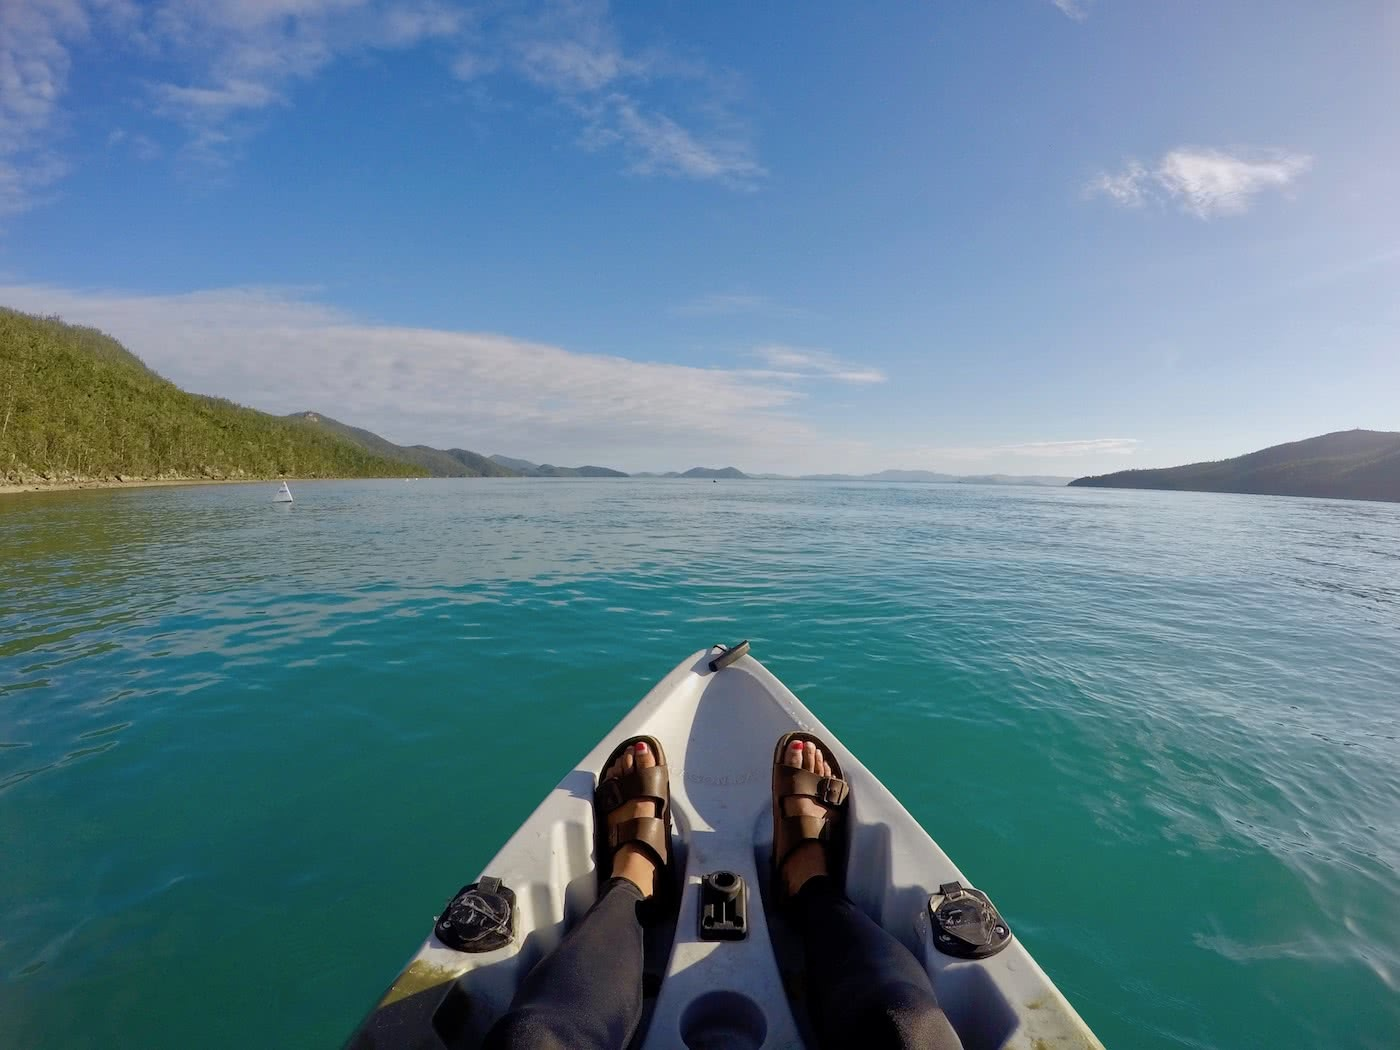 Camping The Whitsundays // Cairn Beach Campground (QLD), Solaye Snider, canoe, Birkenstocks, legs, feet, water